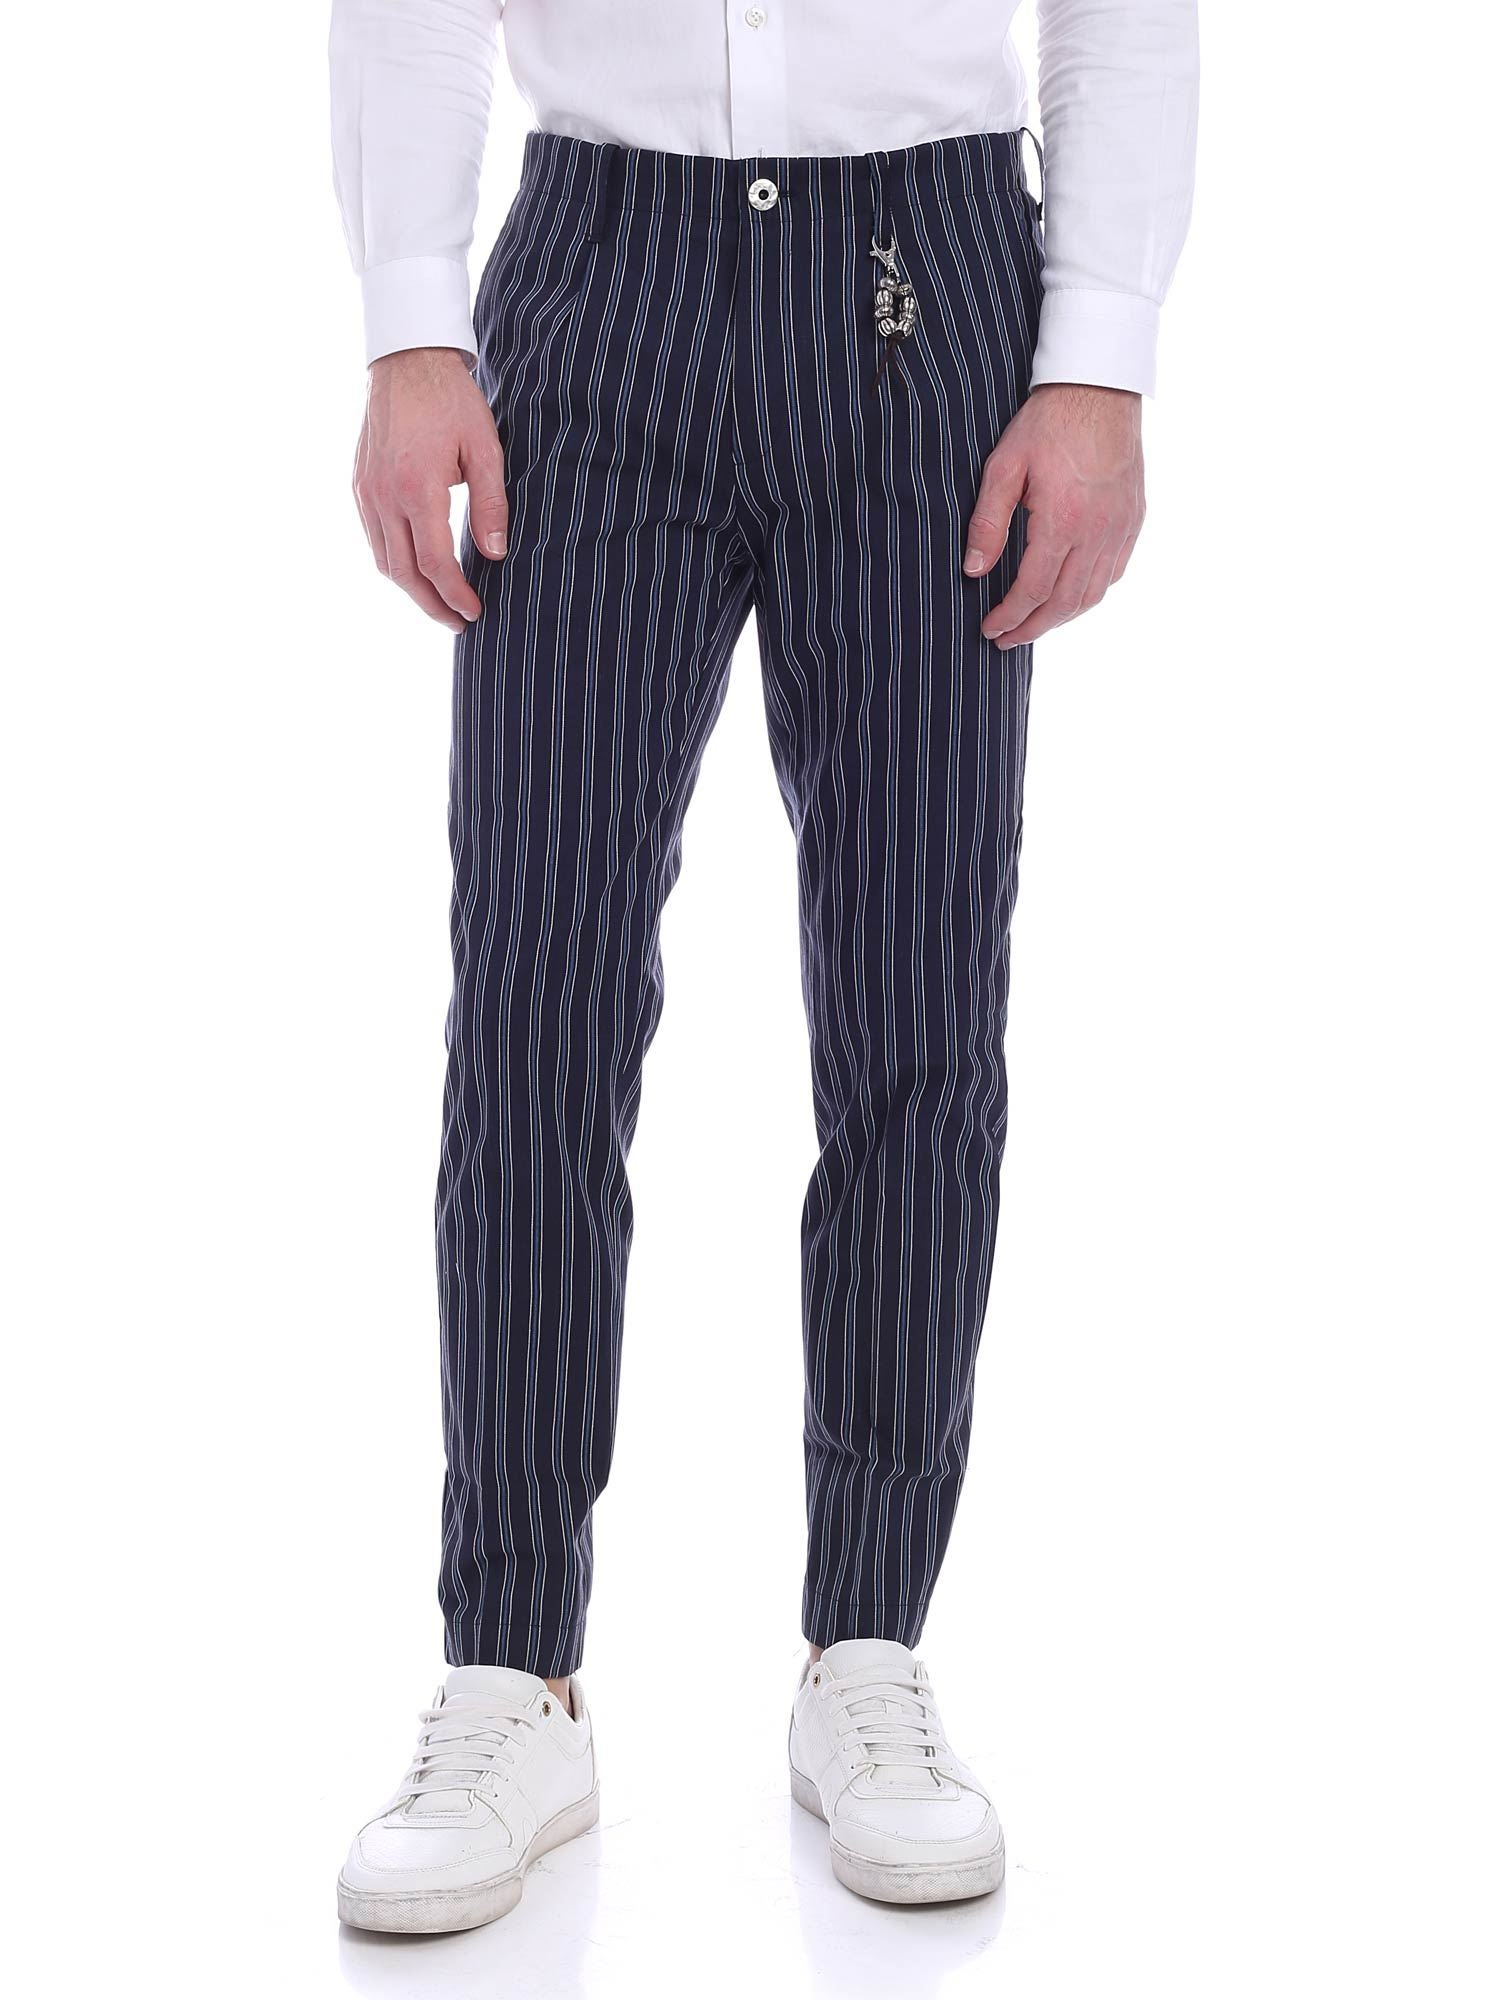 Image of Pantalone una pence righe R92 L-RB